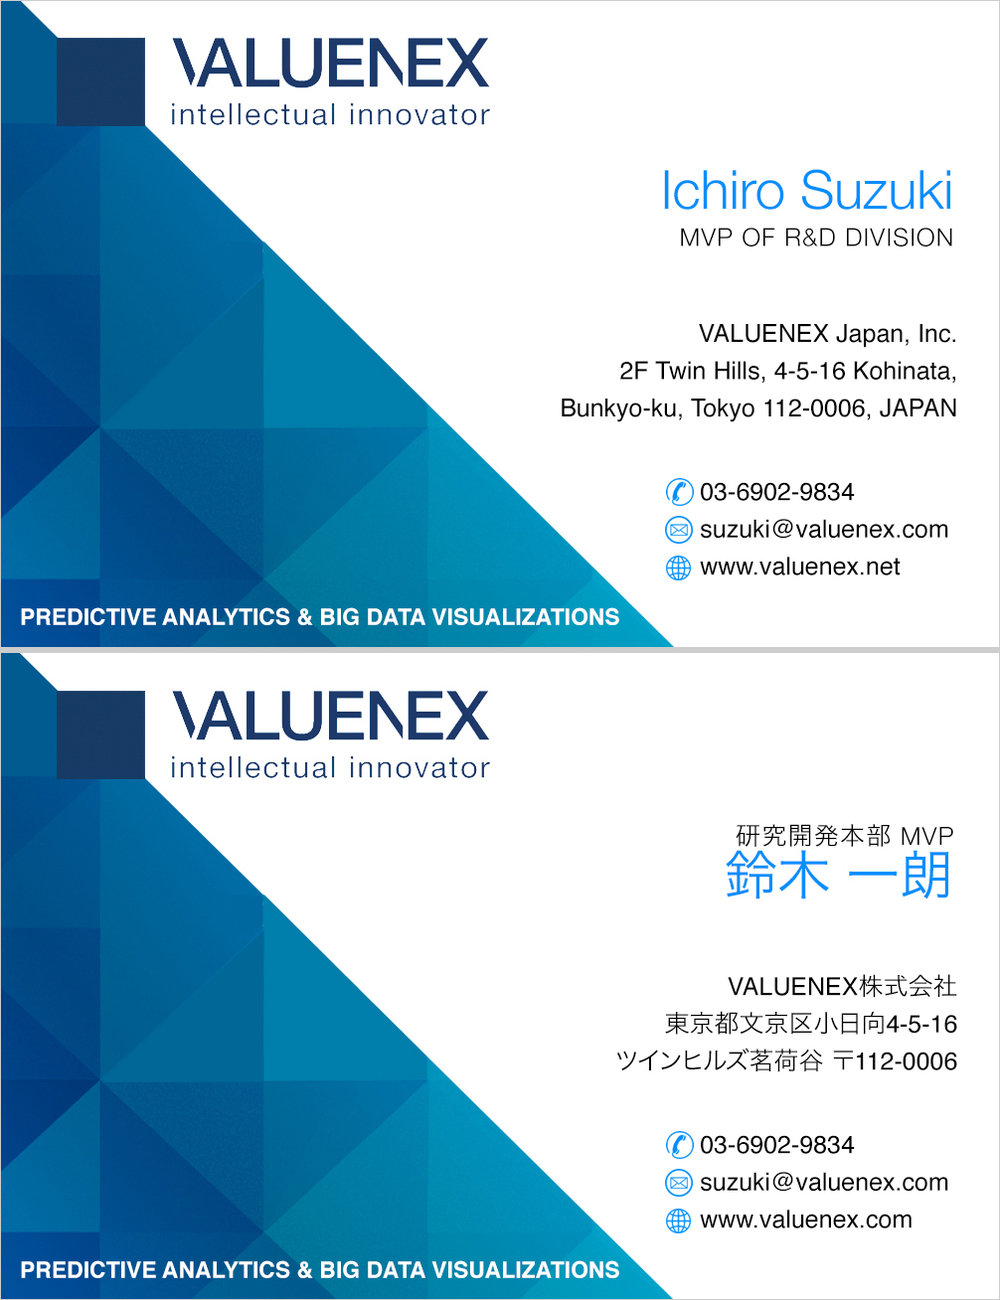 VALUENEX Japan • Option 1